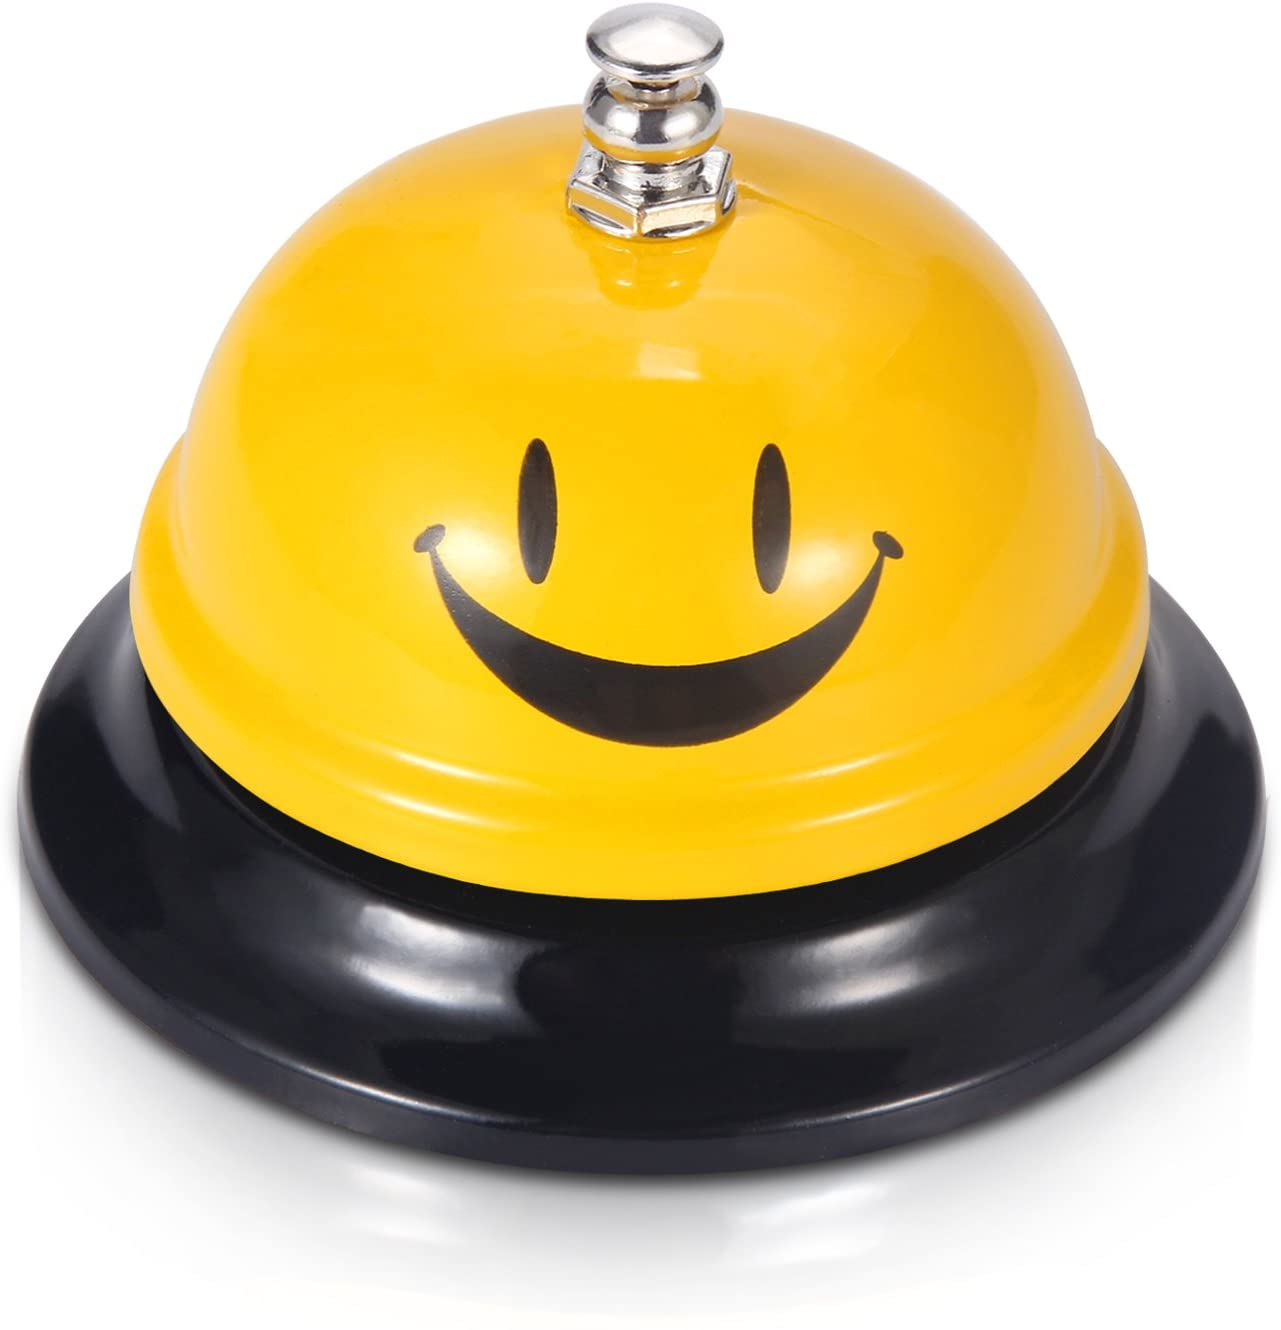 EMDMAK Call Bell, Service Bell for The Porter Kitchen Restaurant Bar Classic Concierge Hotel (3.3 Inch Diameter) (Yellow A) : Office Products